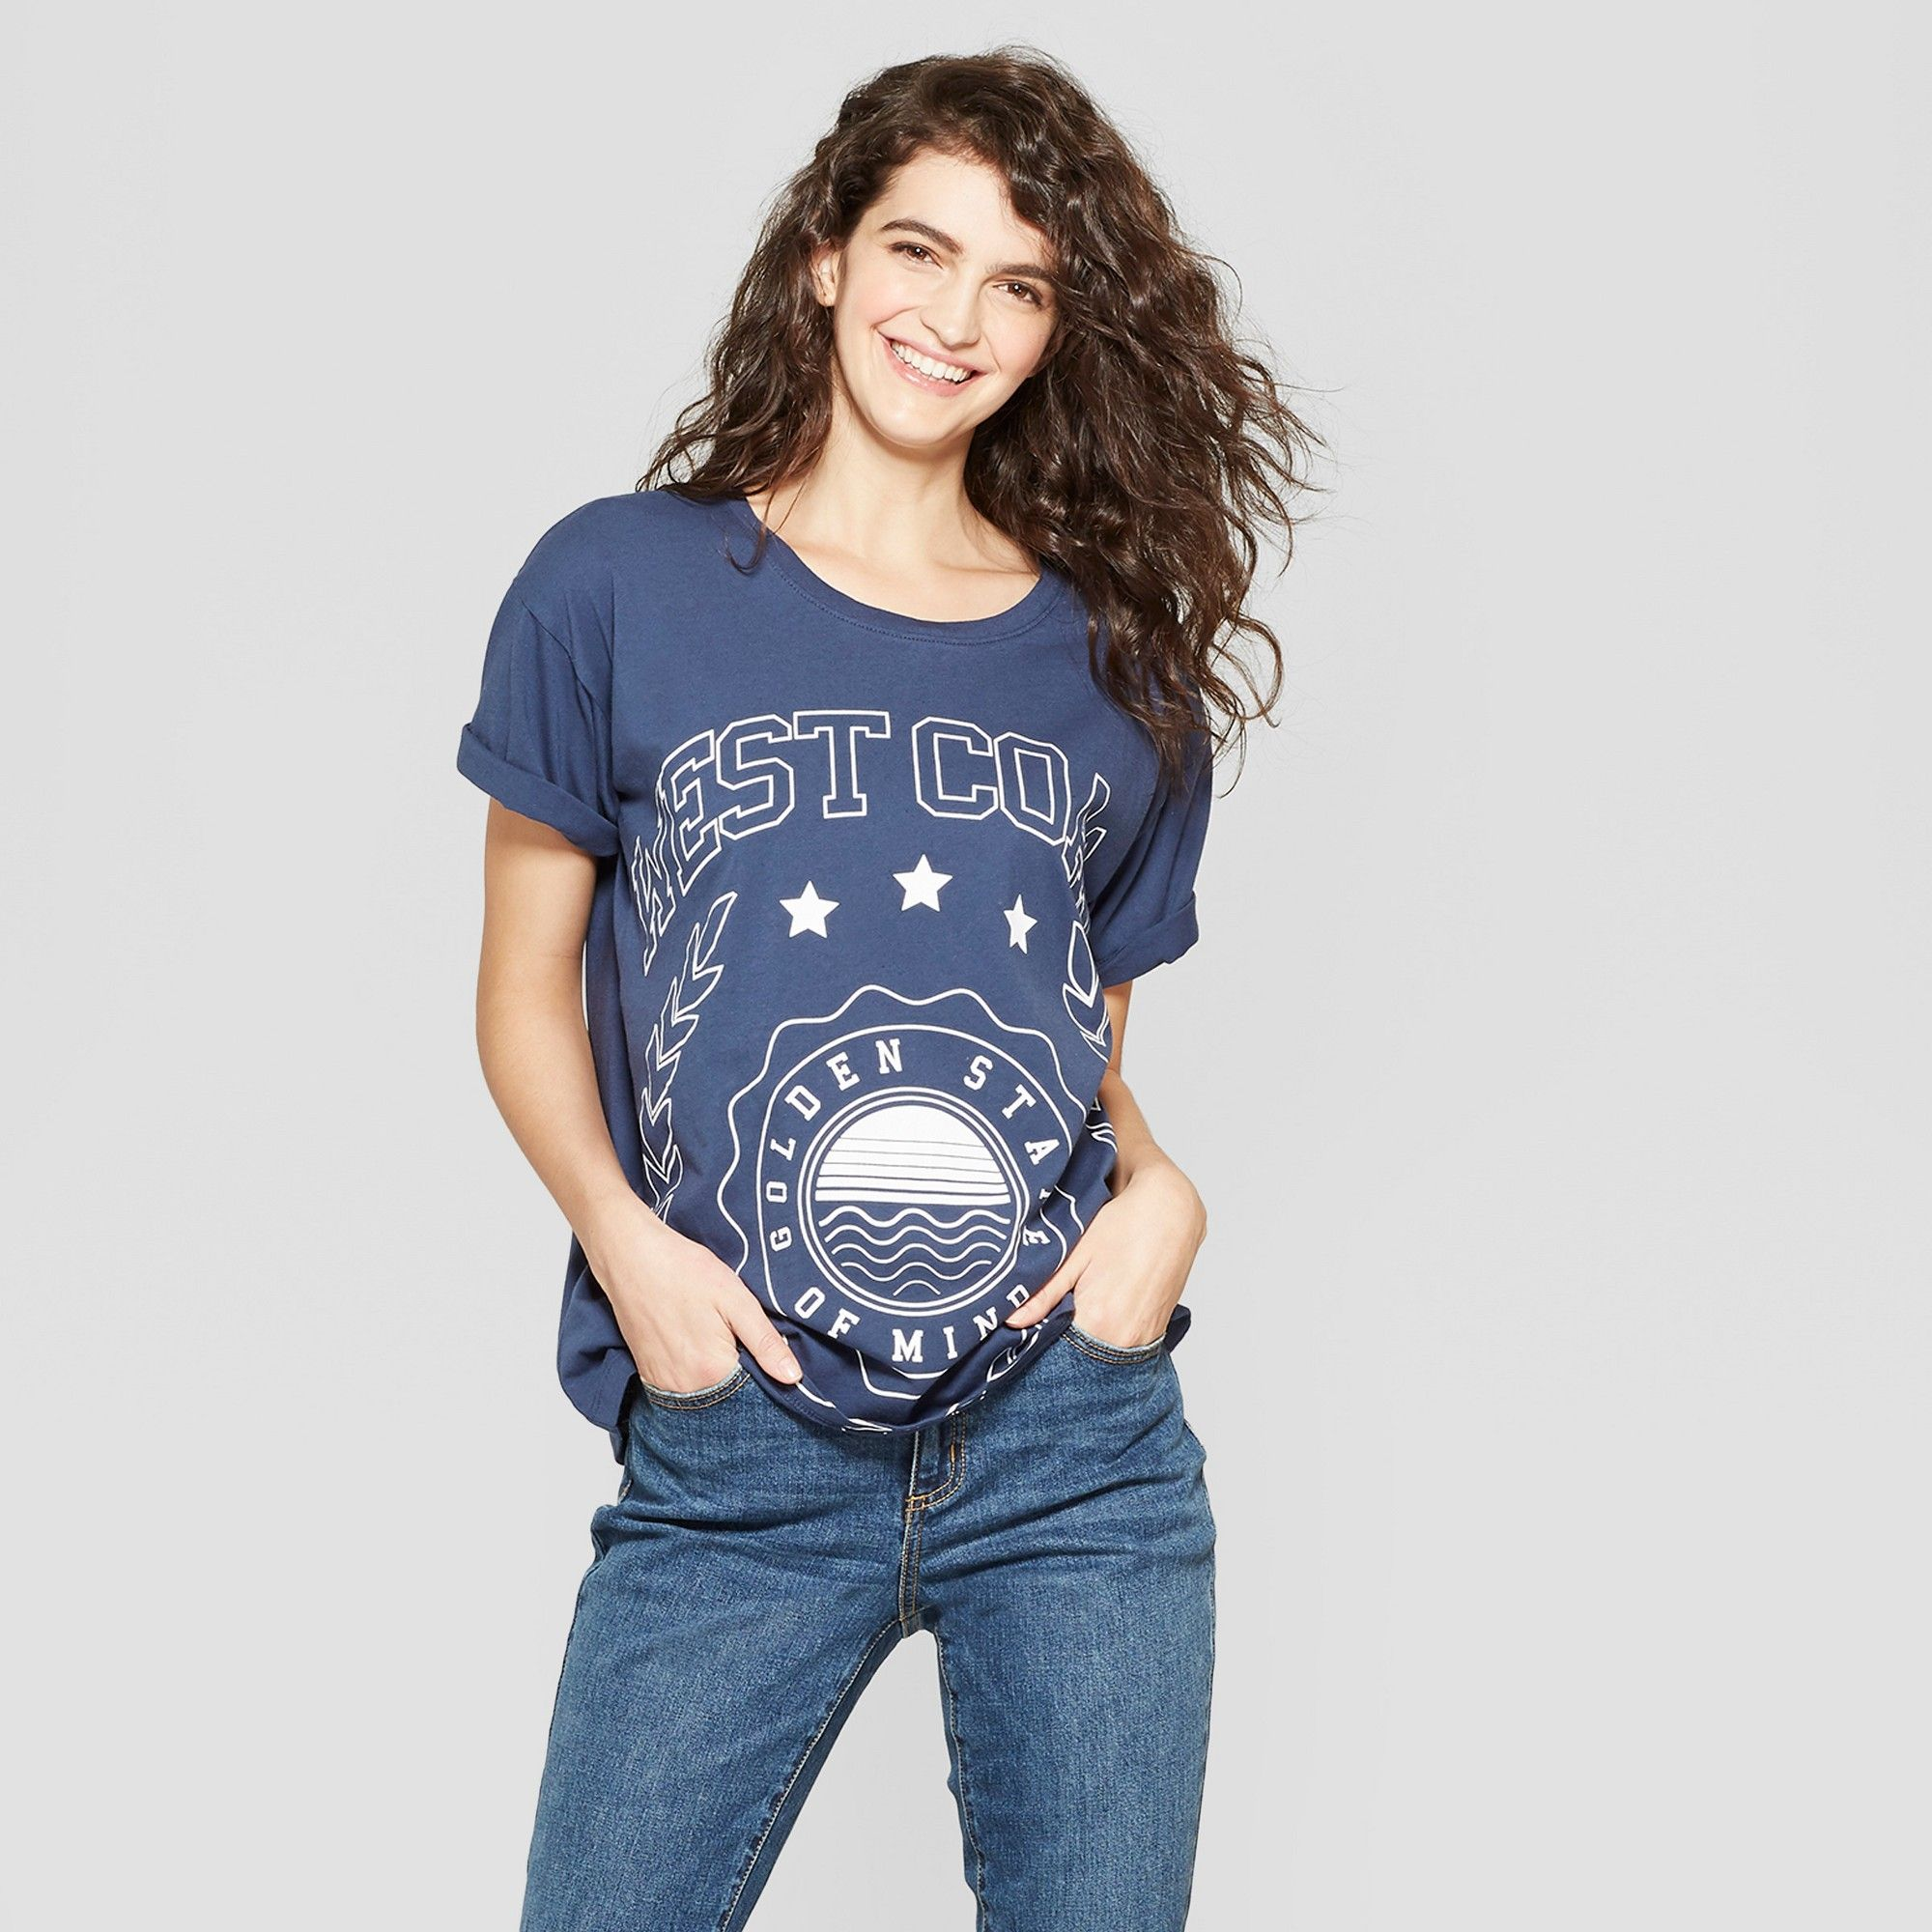 a586120b989 Women s Short Sleeve West Coast Graphic T-Shirt - Modern Lux (Juniors )  Blue XL